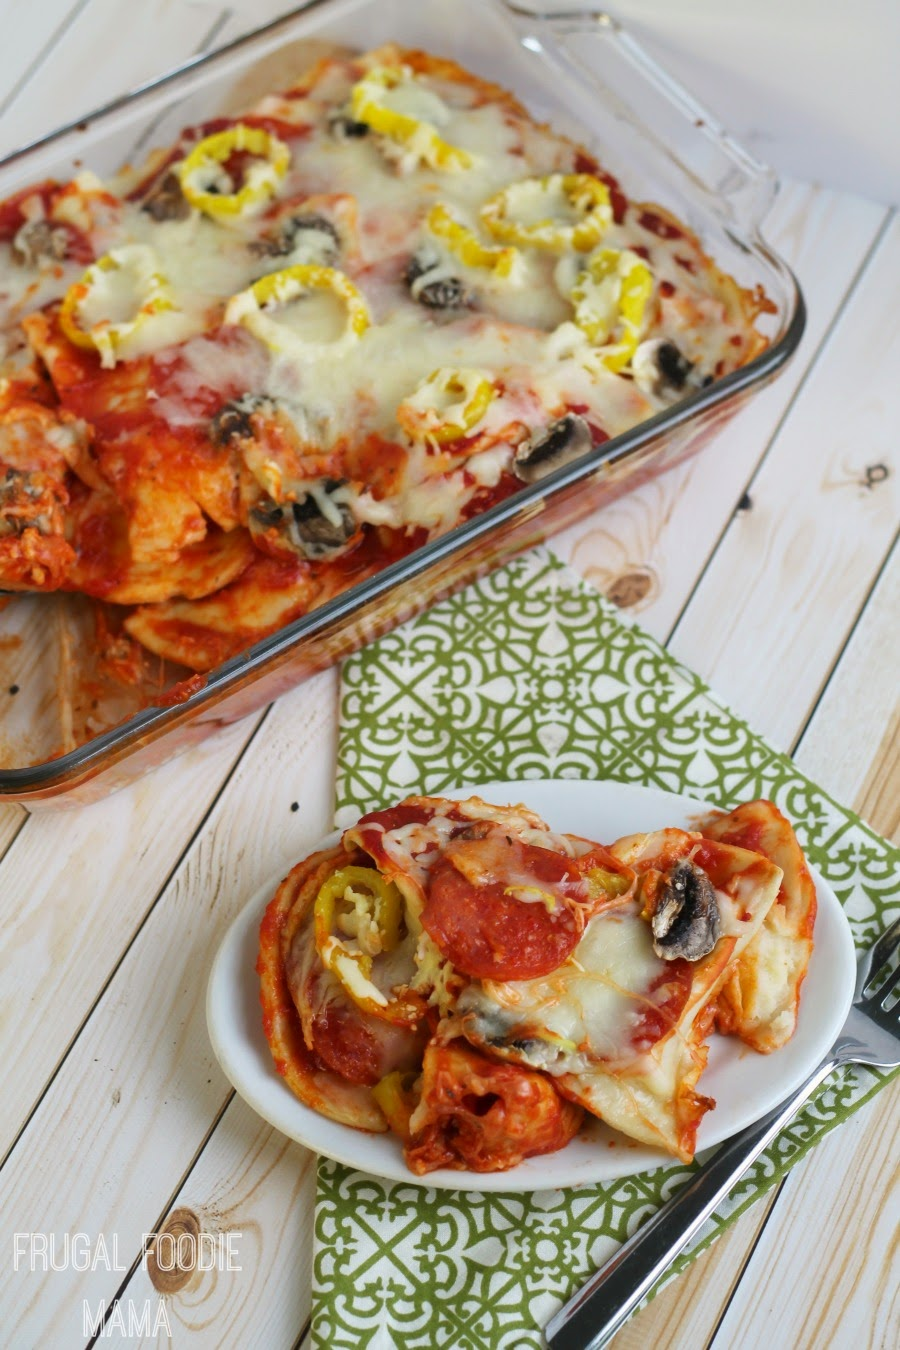 This easy to make Pizza Pierogi Casserole is perfect for a busy weeknight or to bring to a friend in need. Bonus- it freezes well!